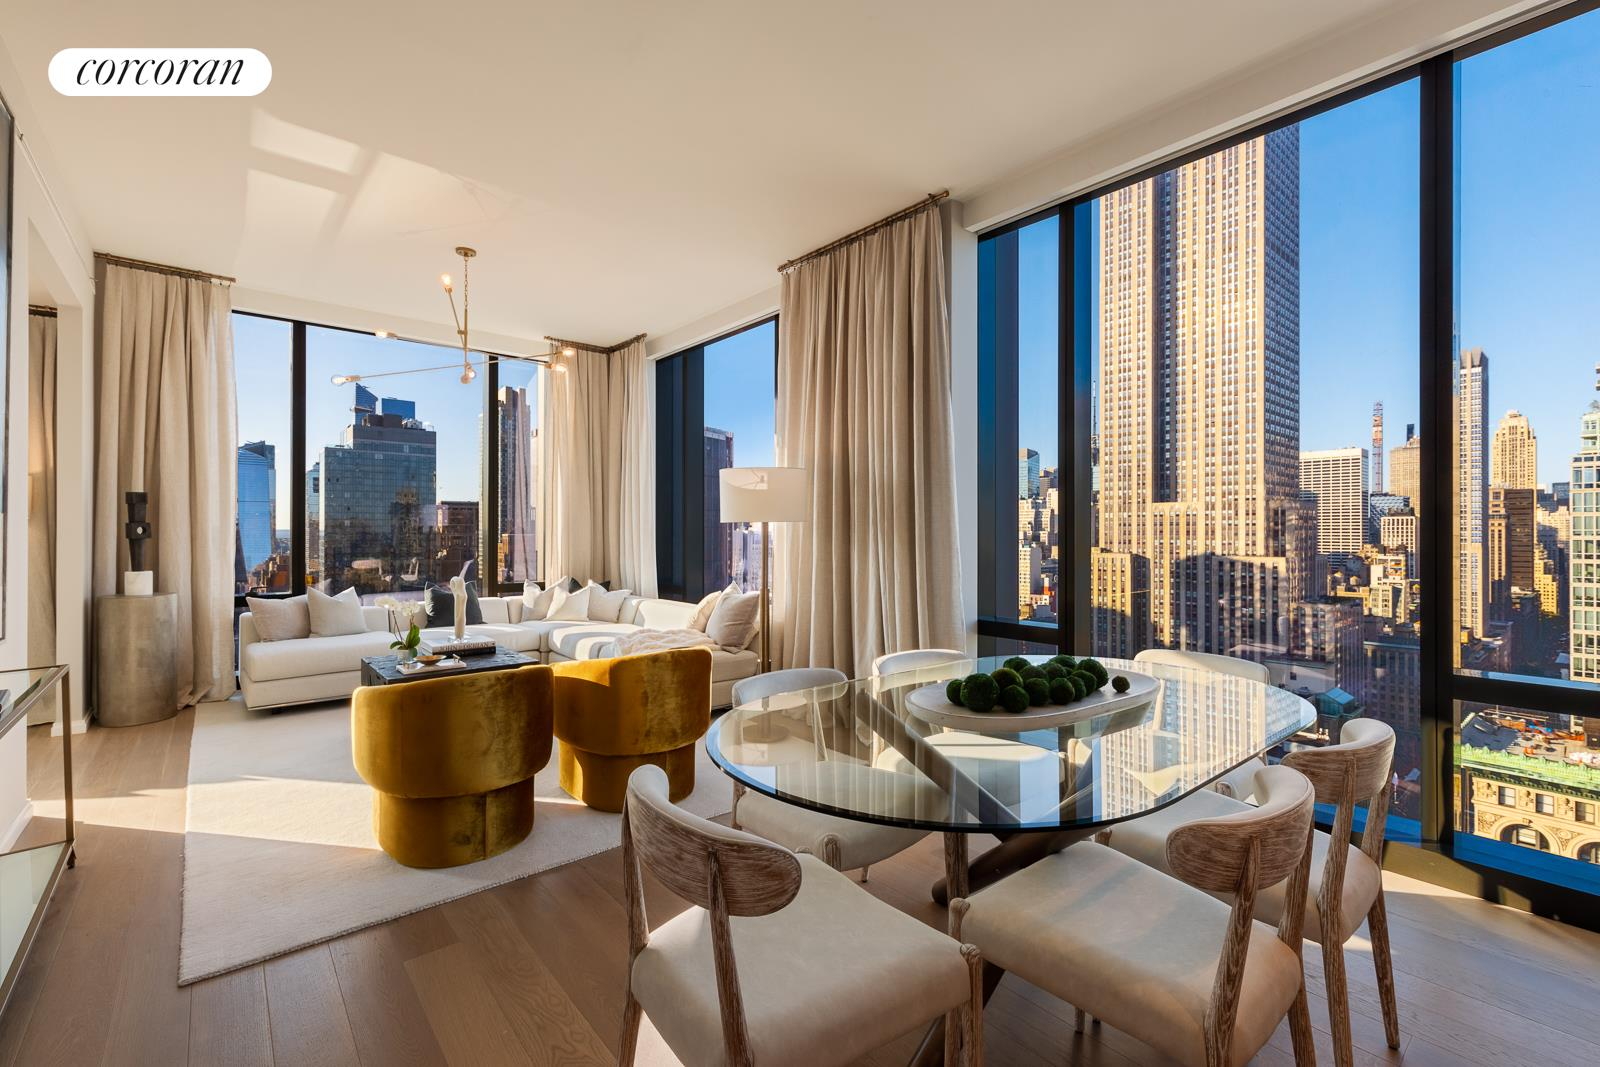 Apartment for sale at 277 Fifth Avenue, Apt 38A